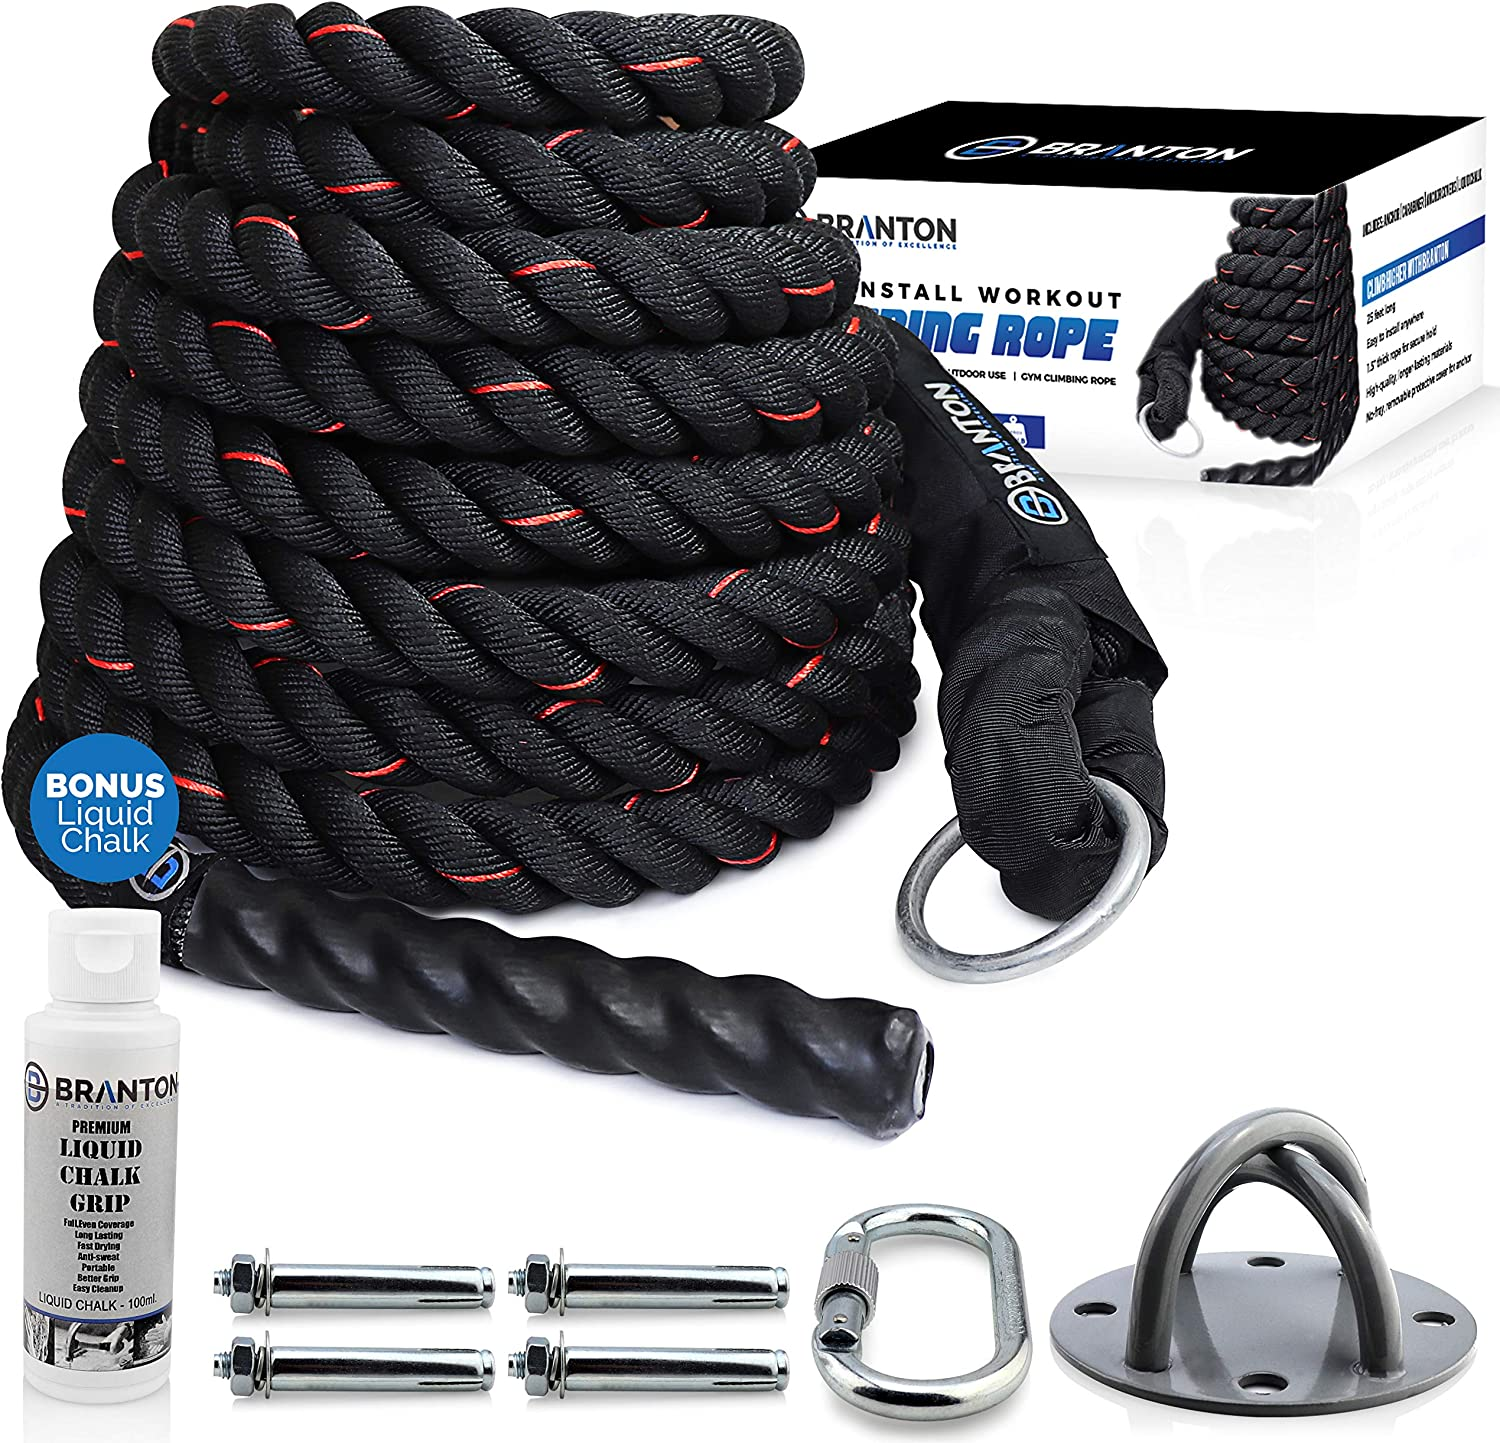 Branton Easy-Install Workout Climbing Rope